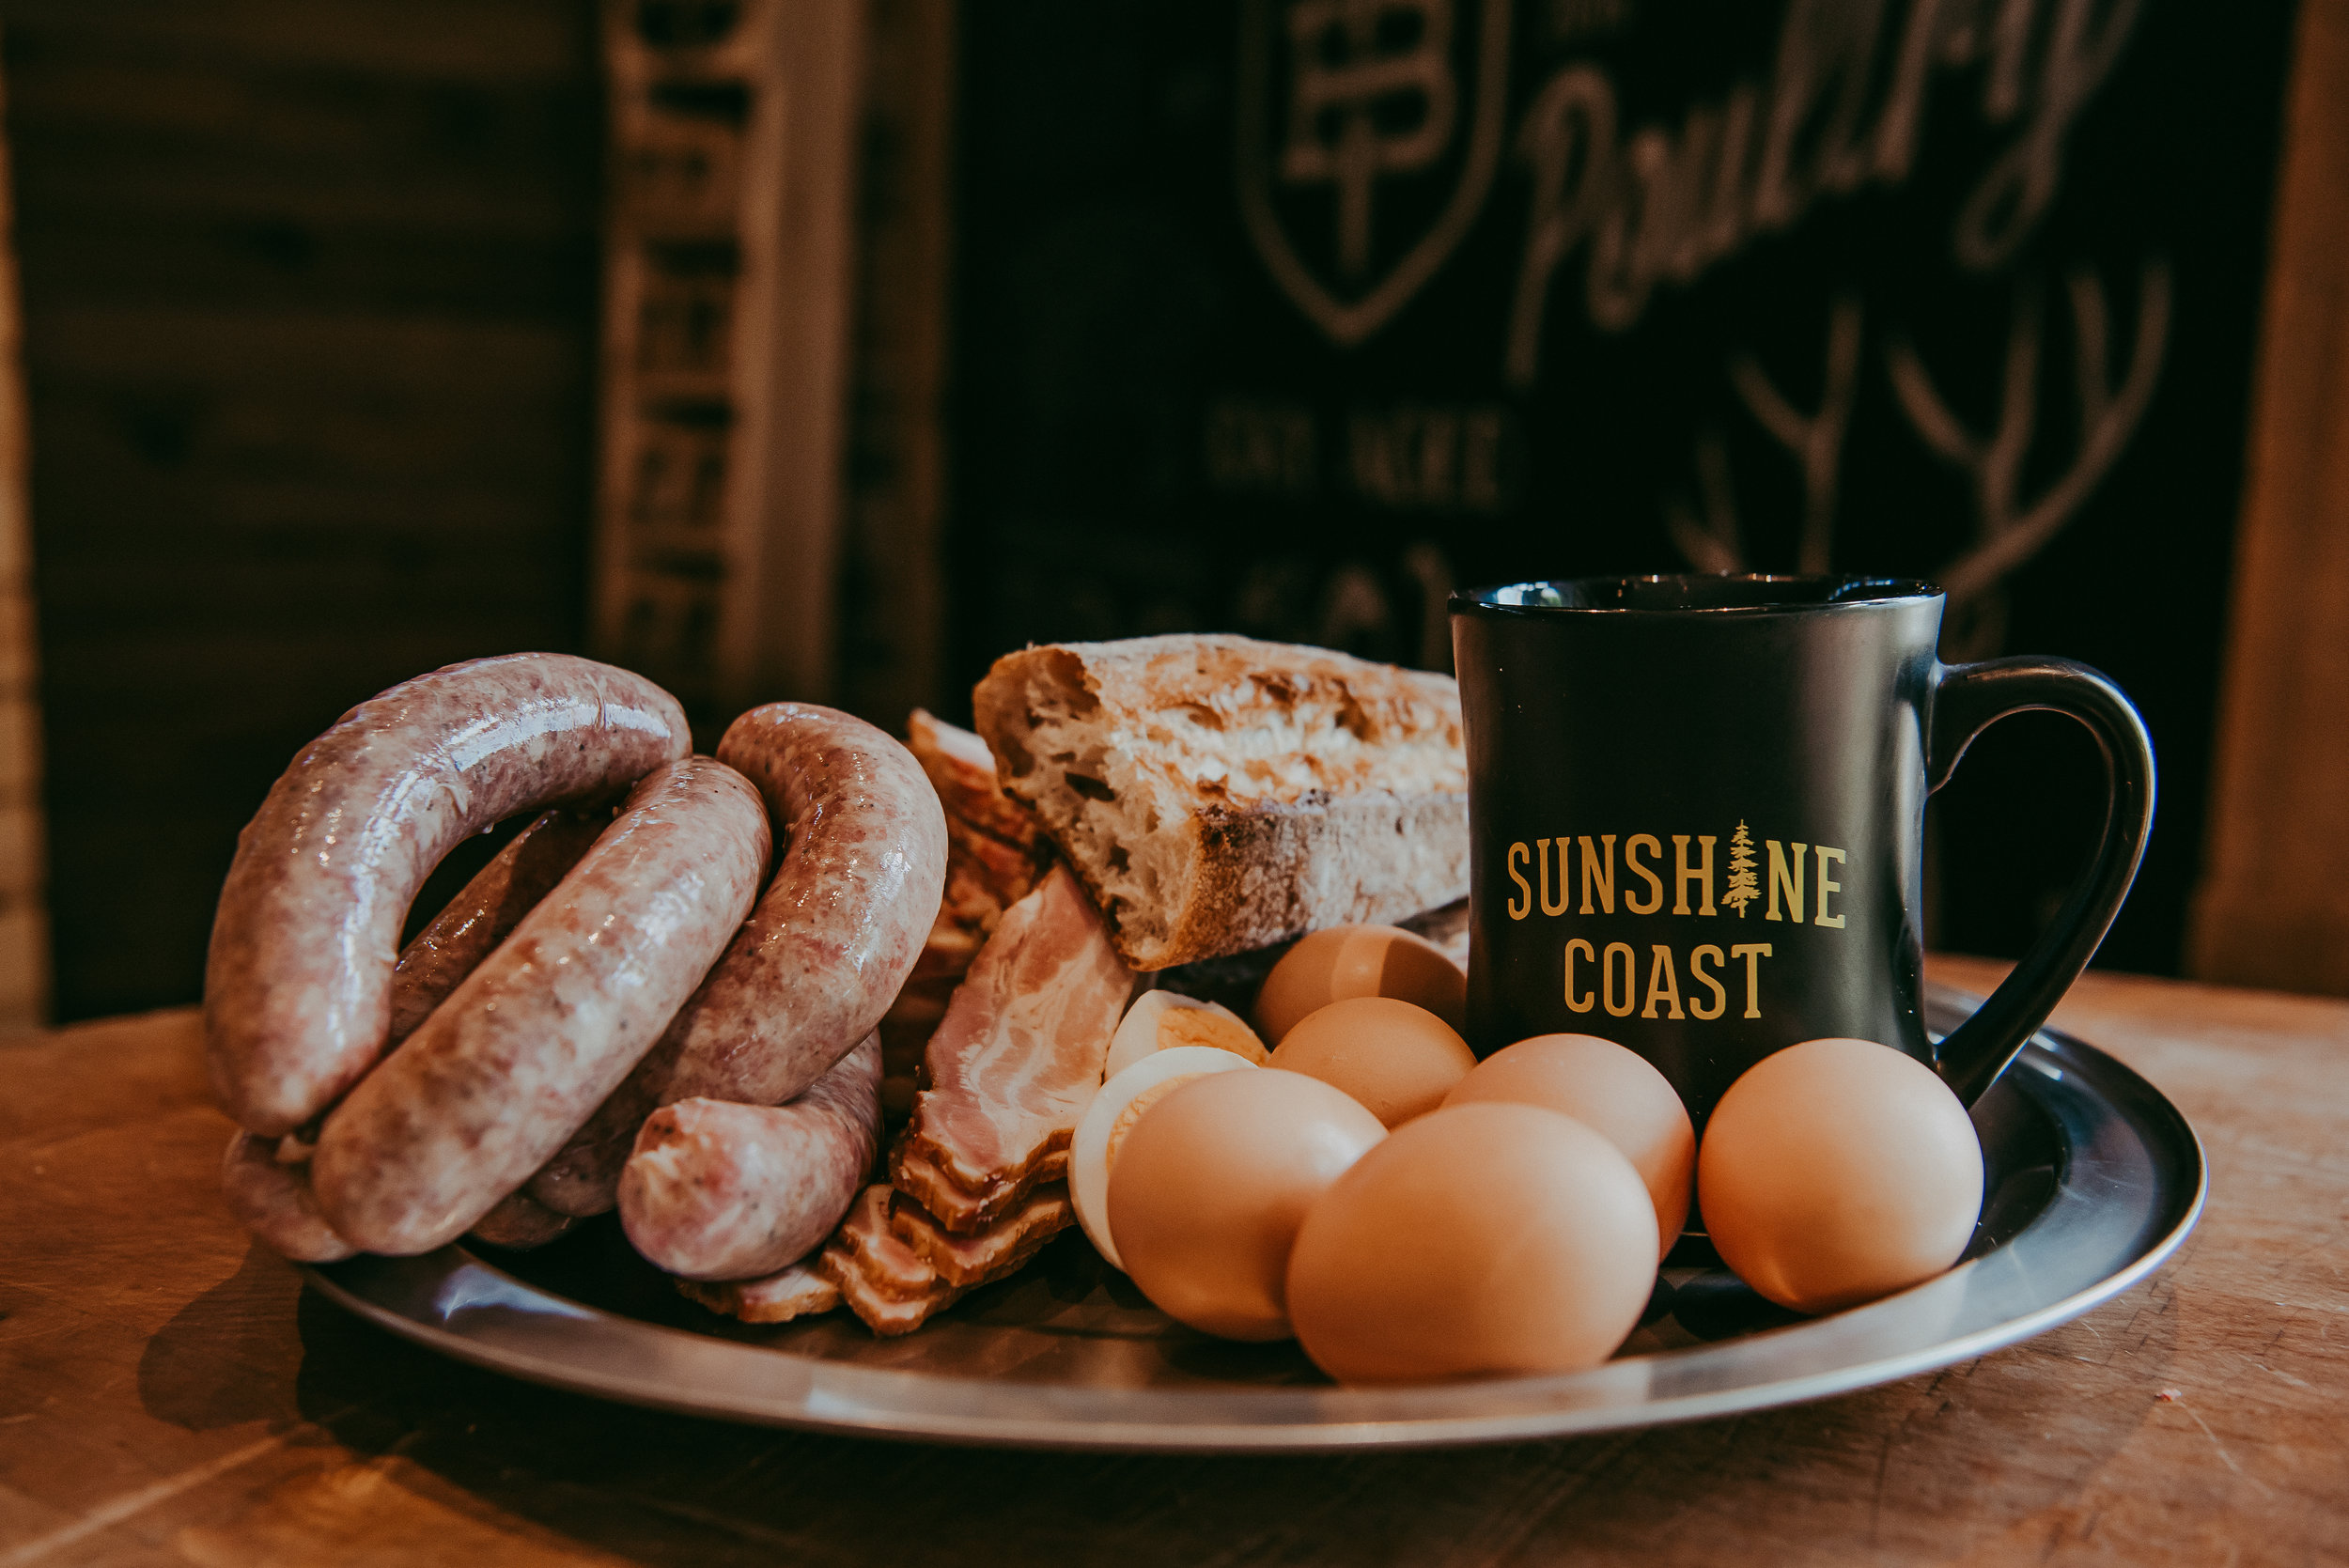 Our Weekend Market Bundle:  1 dozen Free Run Eggs, 1lb of Double Smoked Bacon & 1lb of Breakfast Sausages (only available at our Market location)